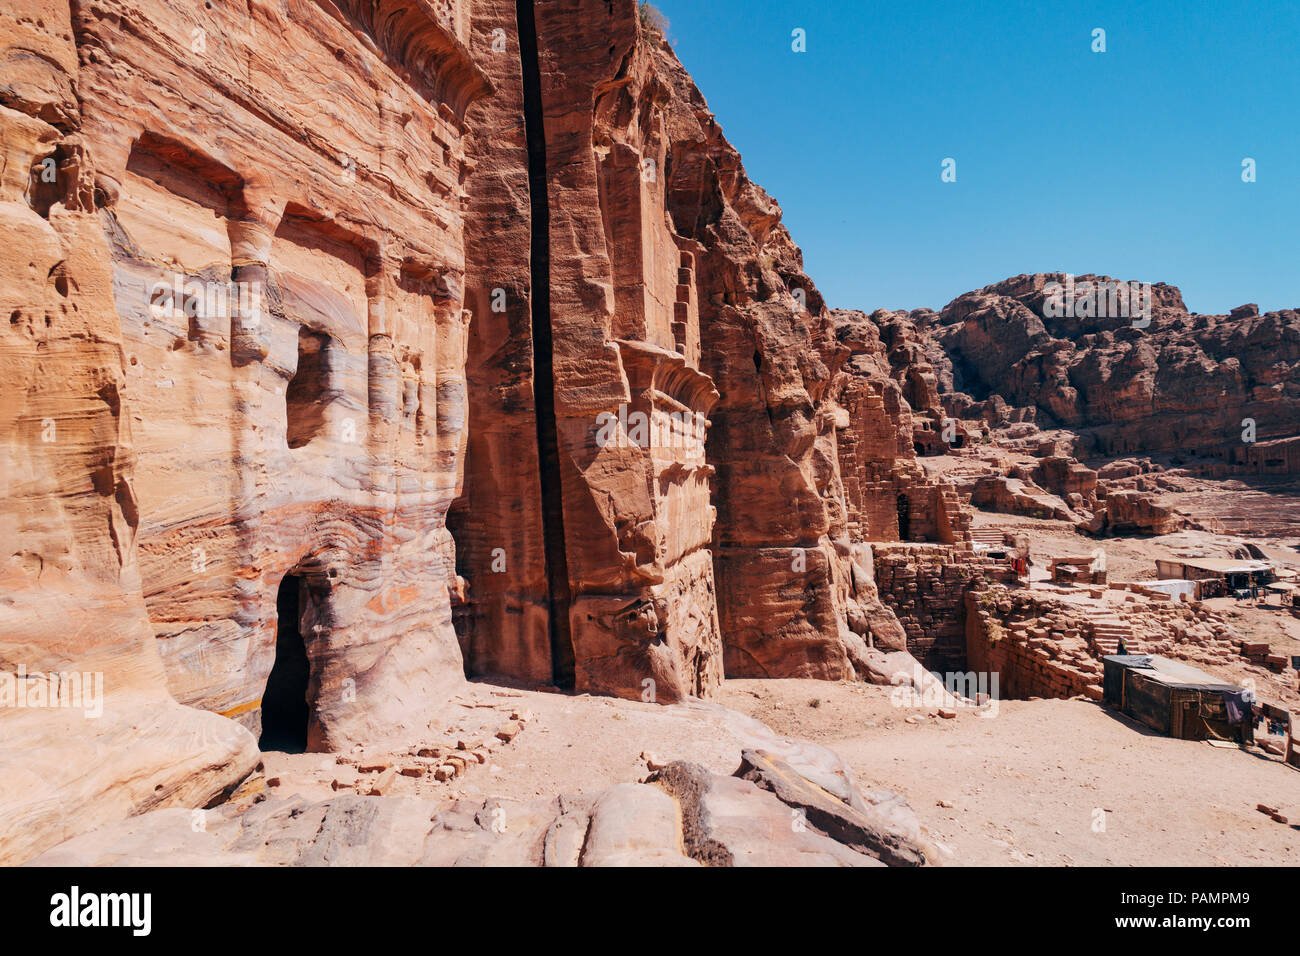 A tomb entrance carved into the rock in the Lost City of Petra, Jordan Stock Photo